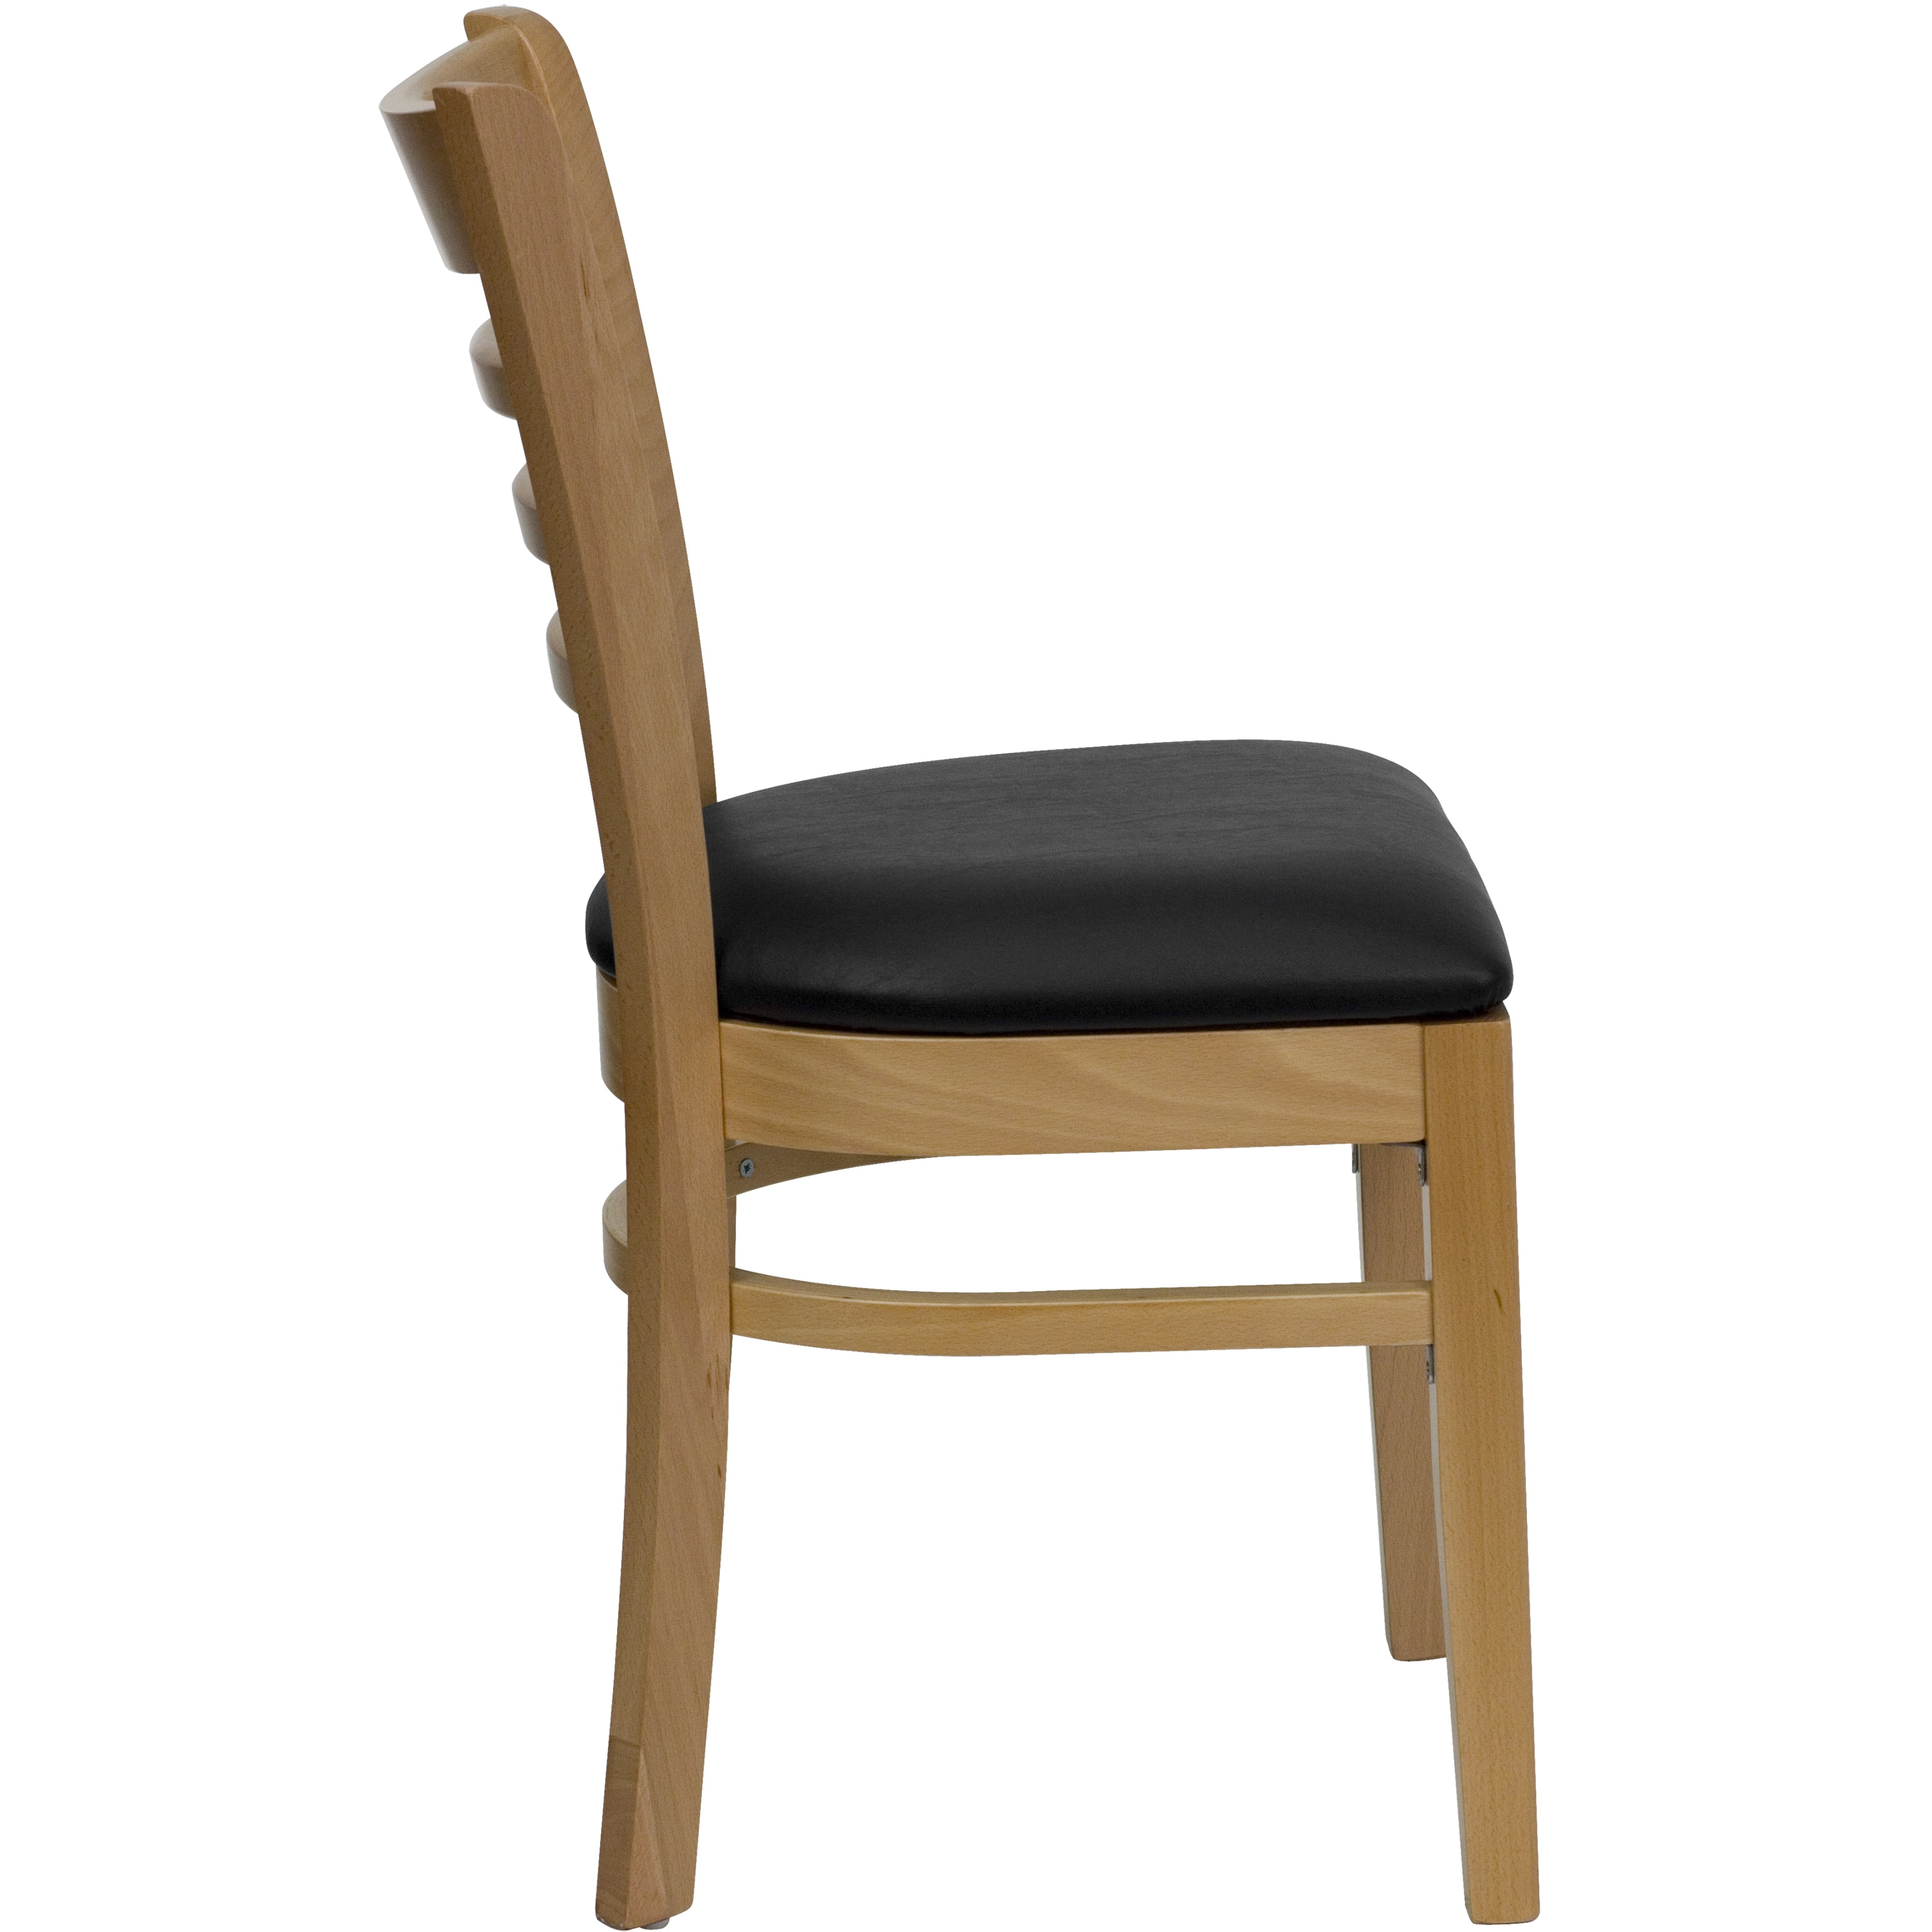 73369186635c Shop Spencer Natural Wood Black Upholstered Classic Dining Chairs - Free  Shipping Today - Overstock - 14419340